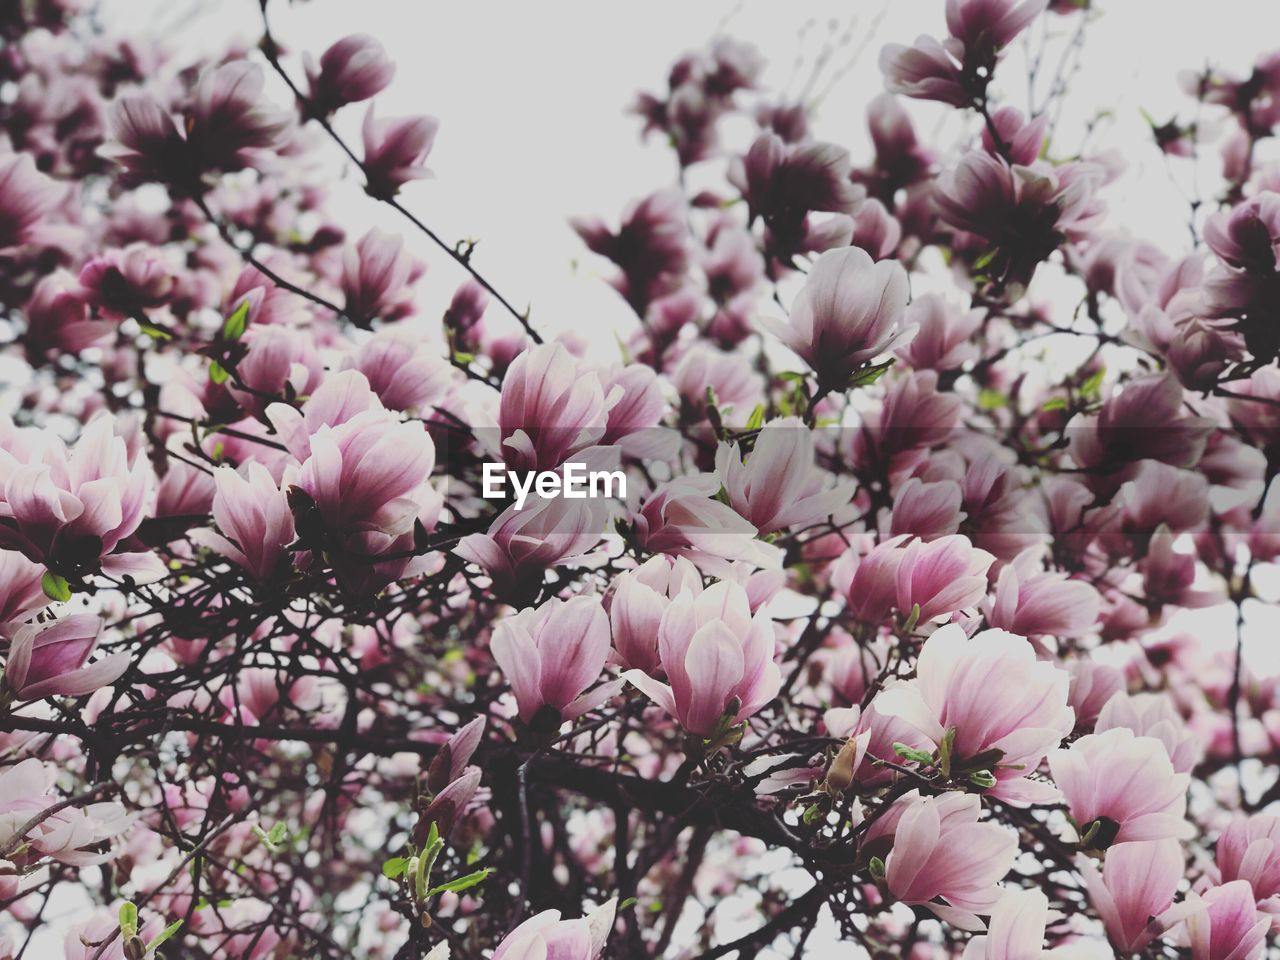 flower, pink color, blossom, tree, fragility, beauty in nature, springtime, nature, magnolia, growth, branch, freshness, no people, pink, petal, low angle view, close-up, day, outdoors, blooming, flower head